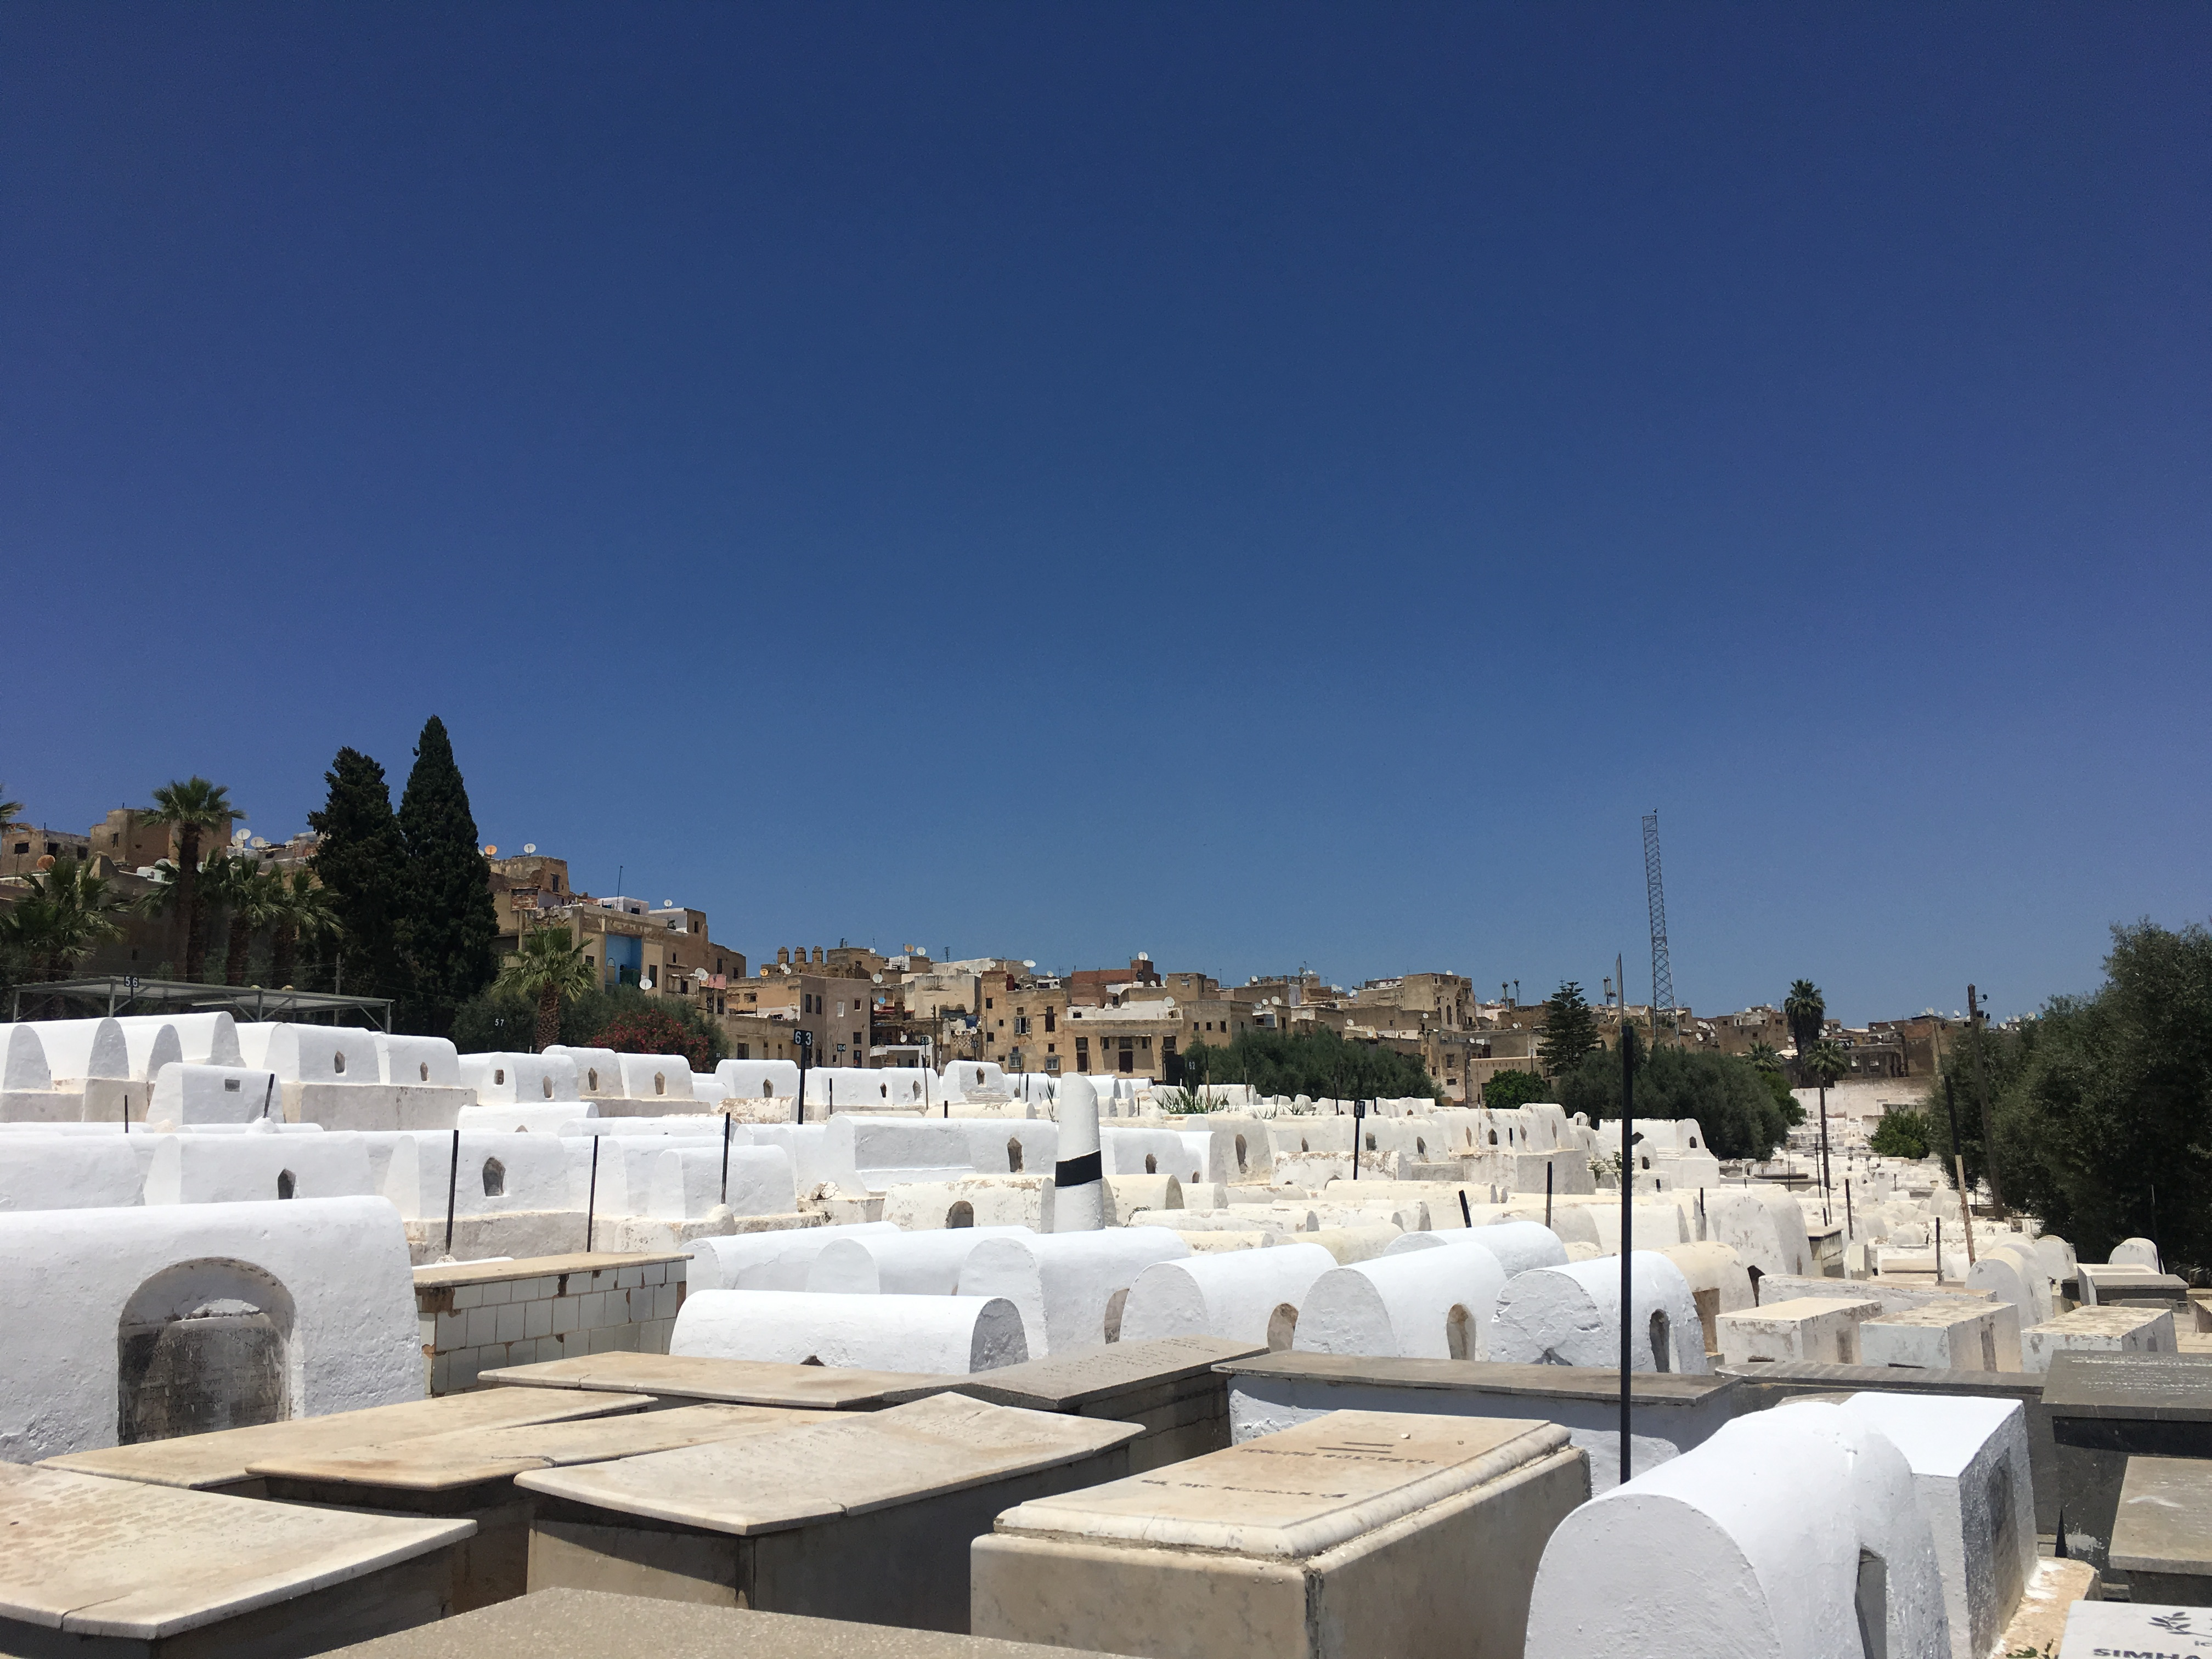 The Jewish cemetery in Fez